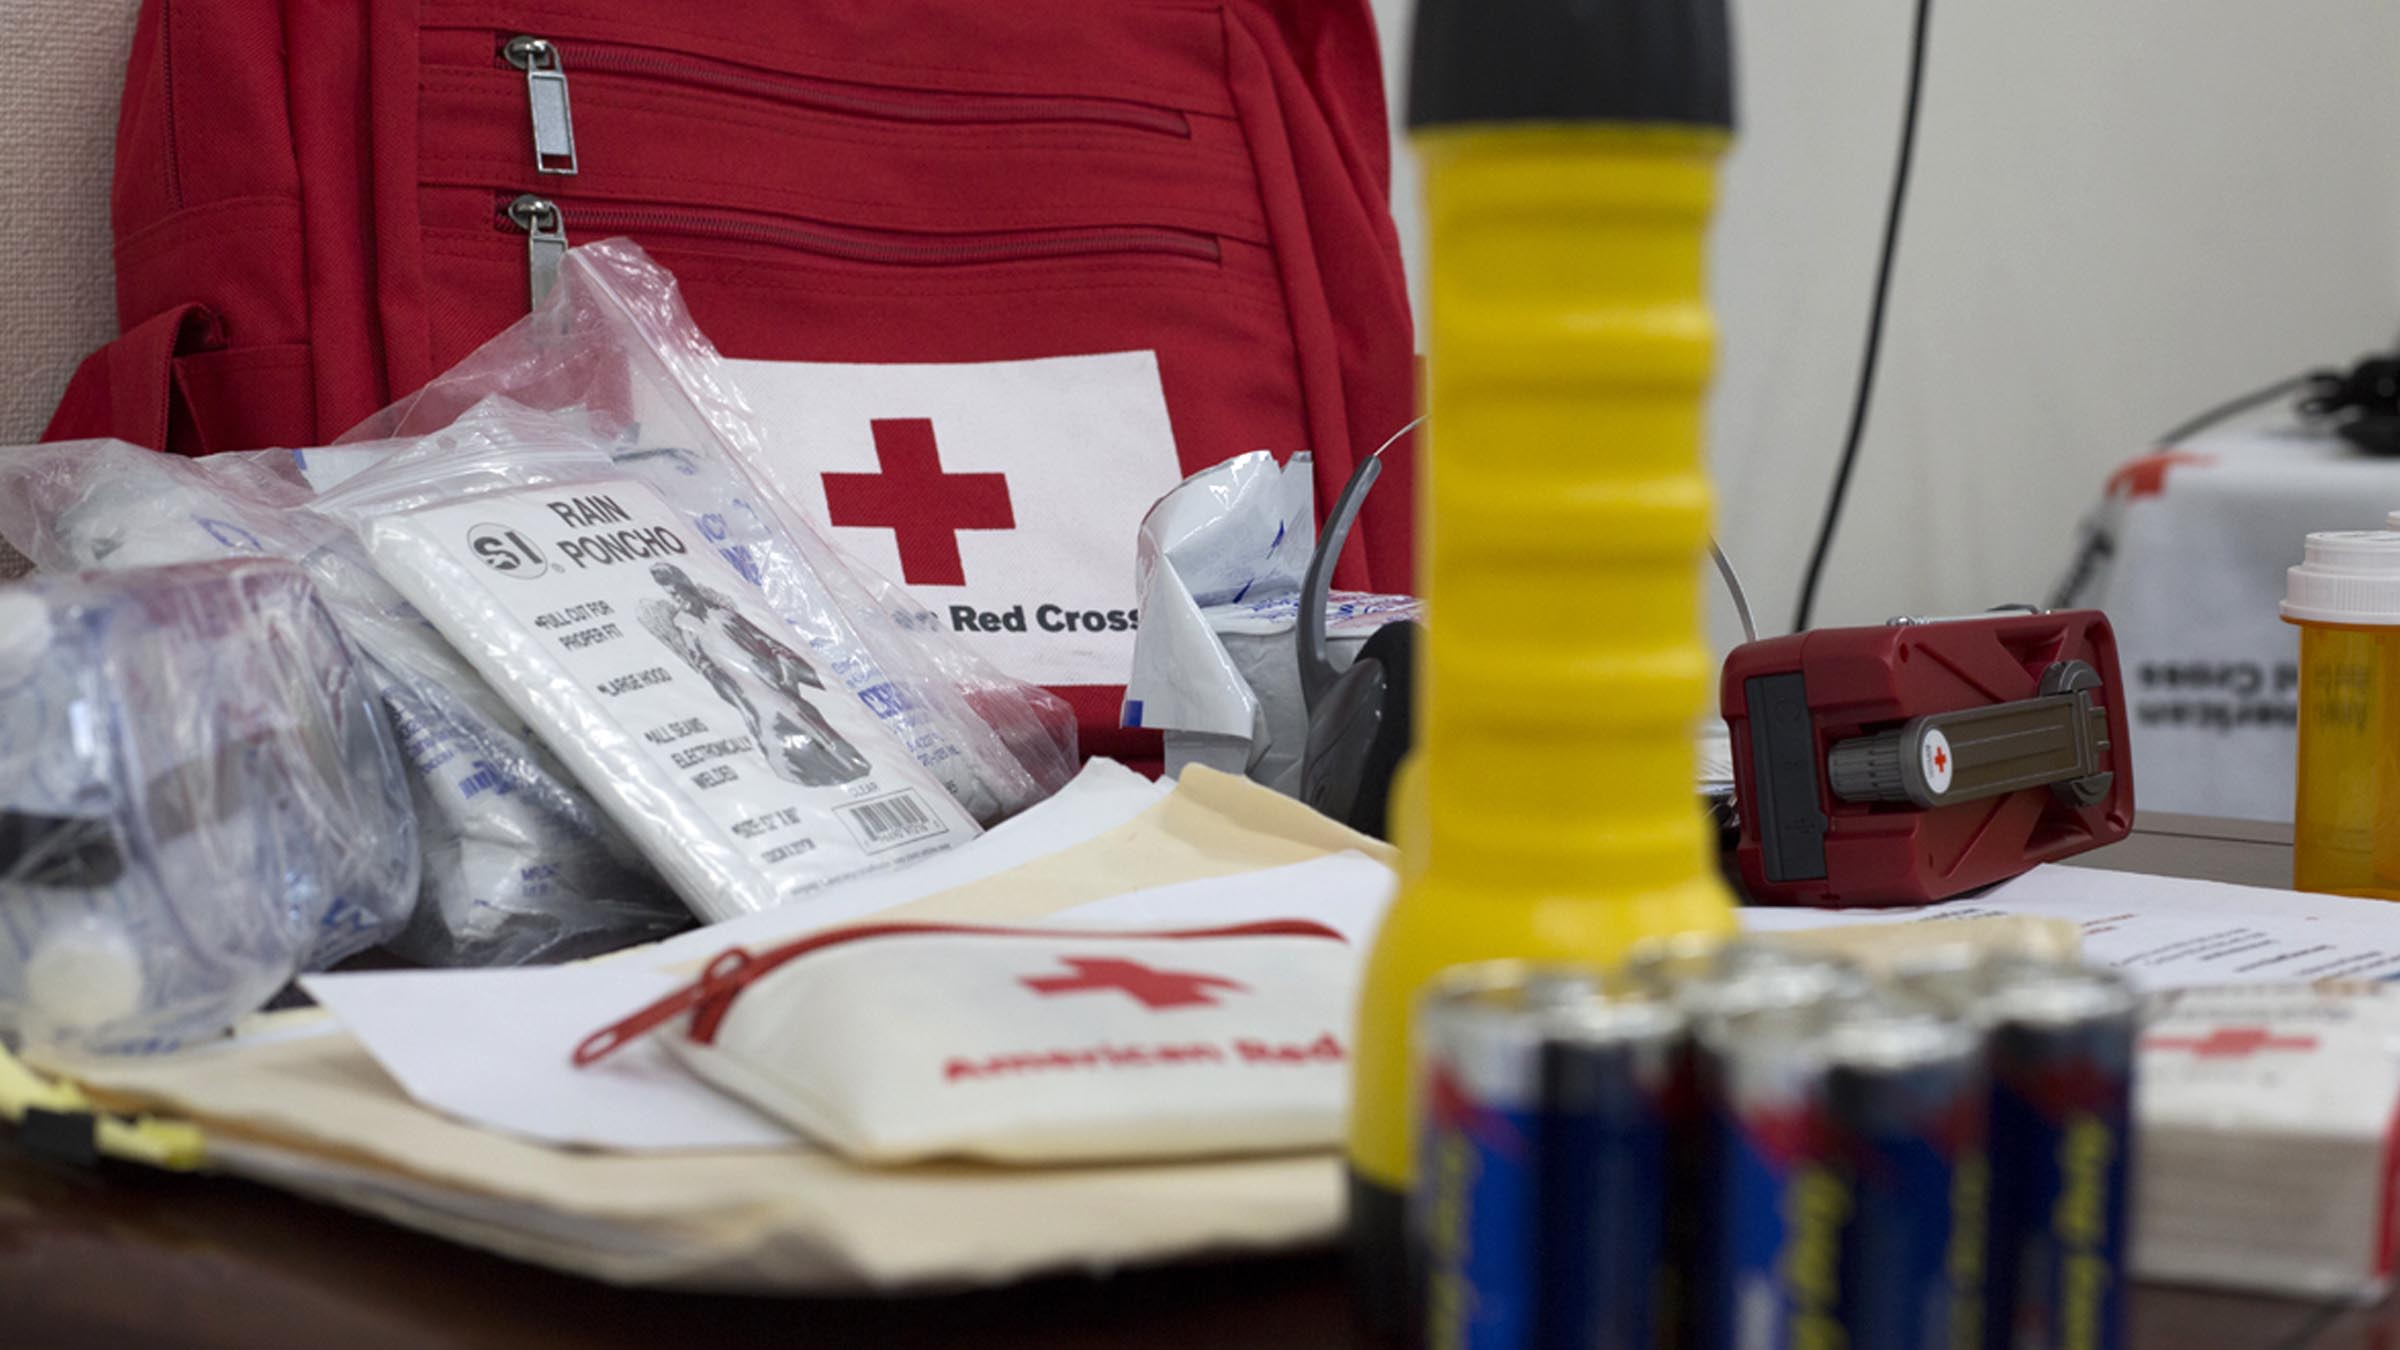 American Red Cross branded First-Aid materials are spread across a table.